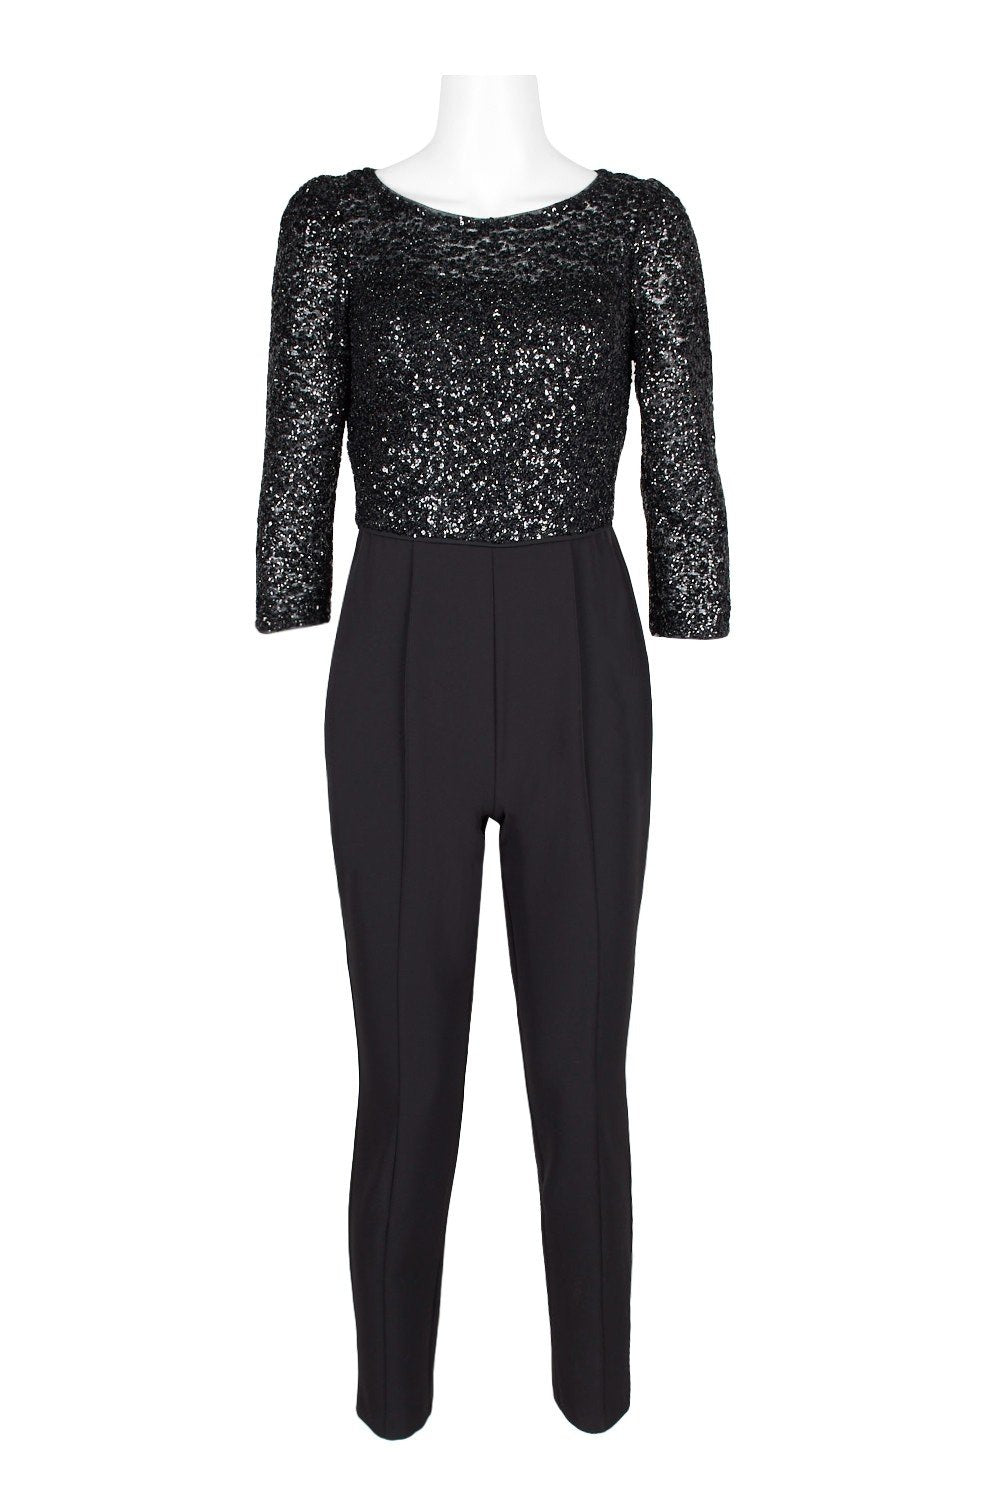 Adrianna Papell - AP1E206237 Sequined Bateau Fitted Jumpsuit In Black